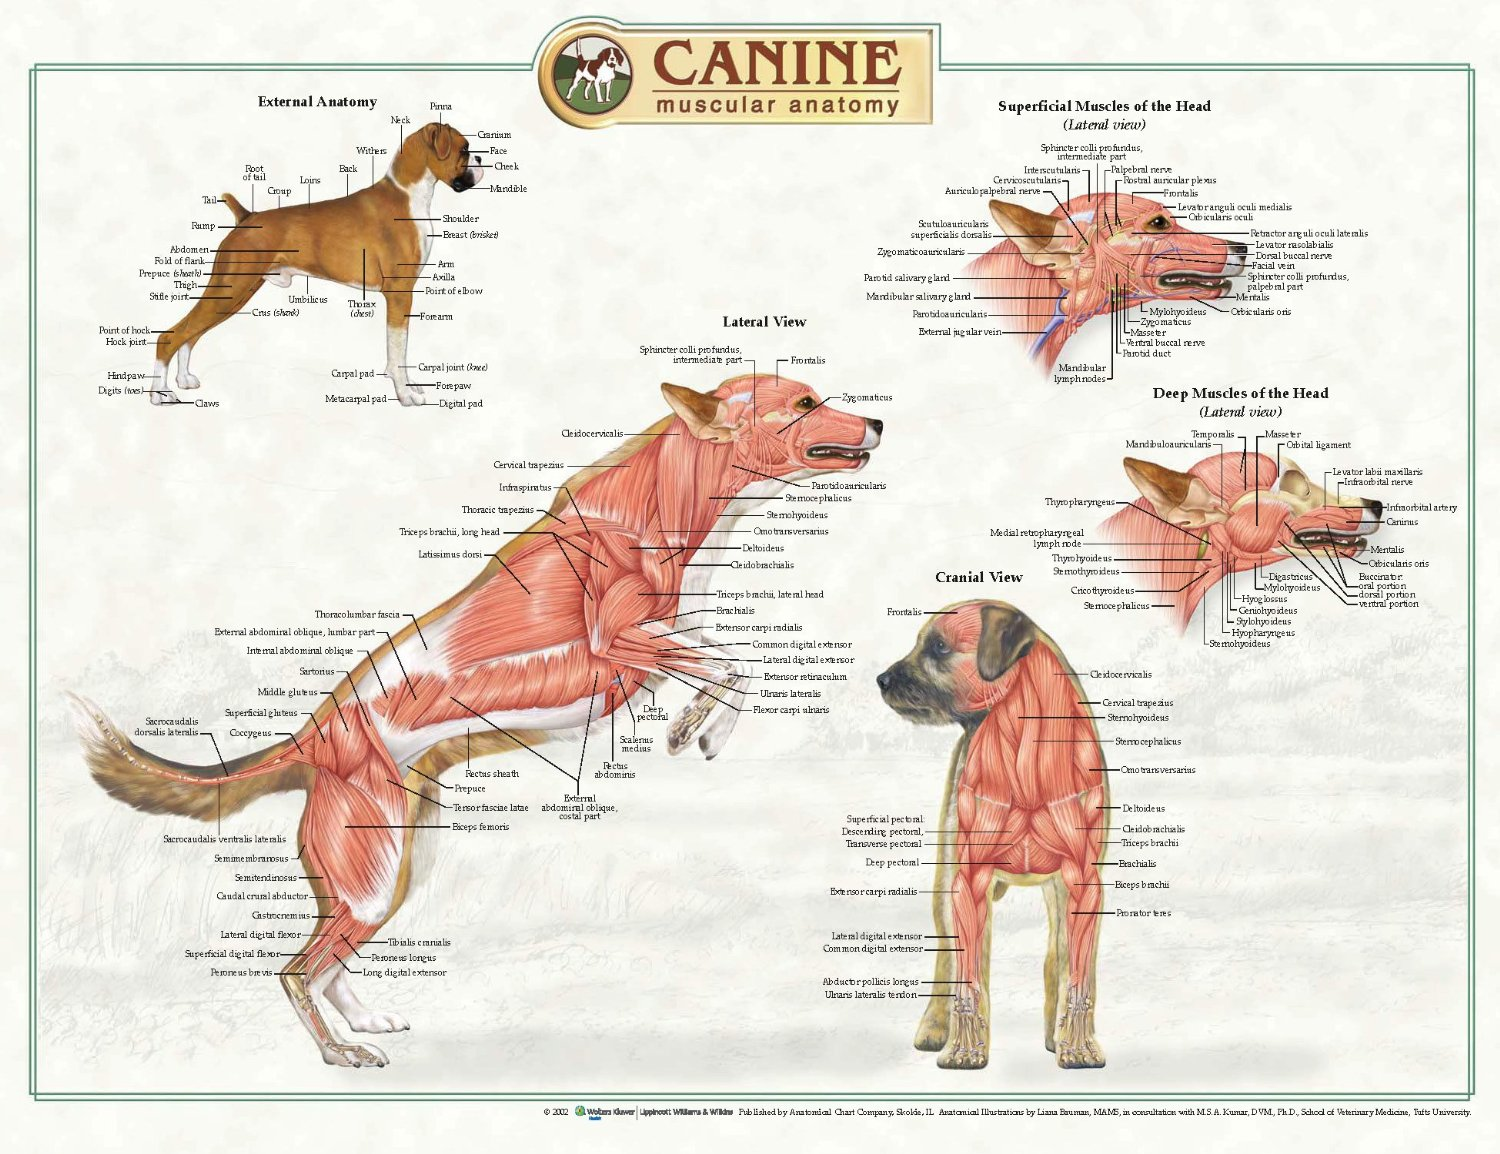 Anatomy Of Head Diagram Of Dogs - Trusted Wiring Diagram •